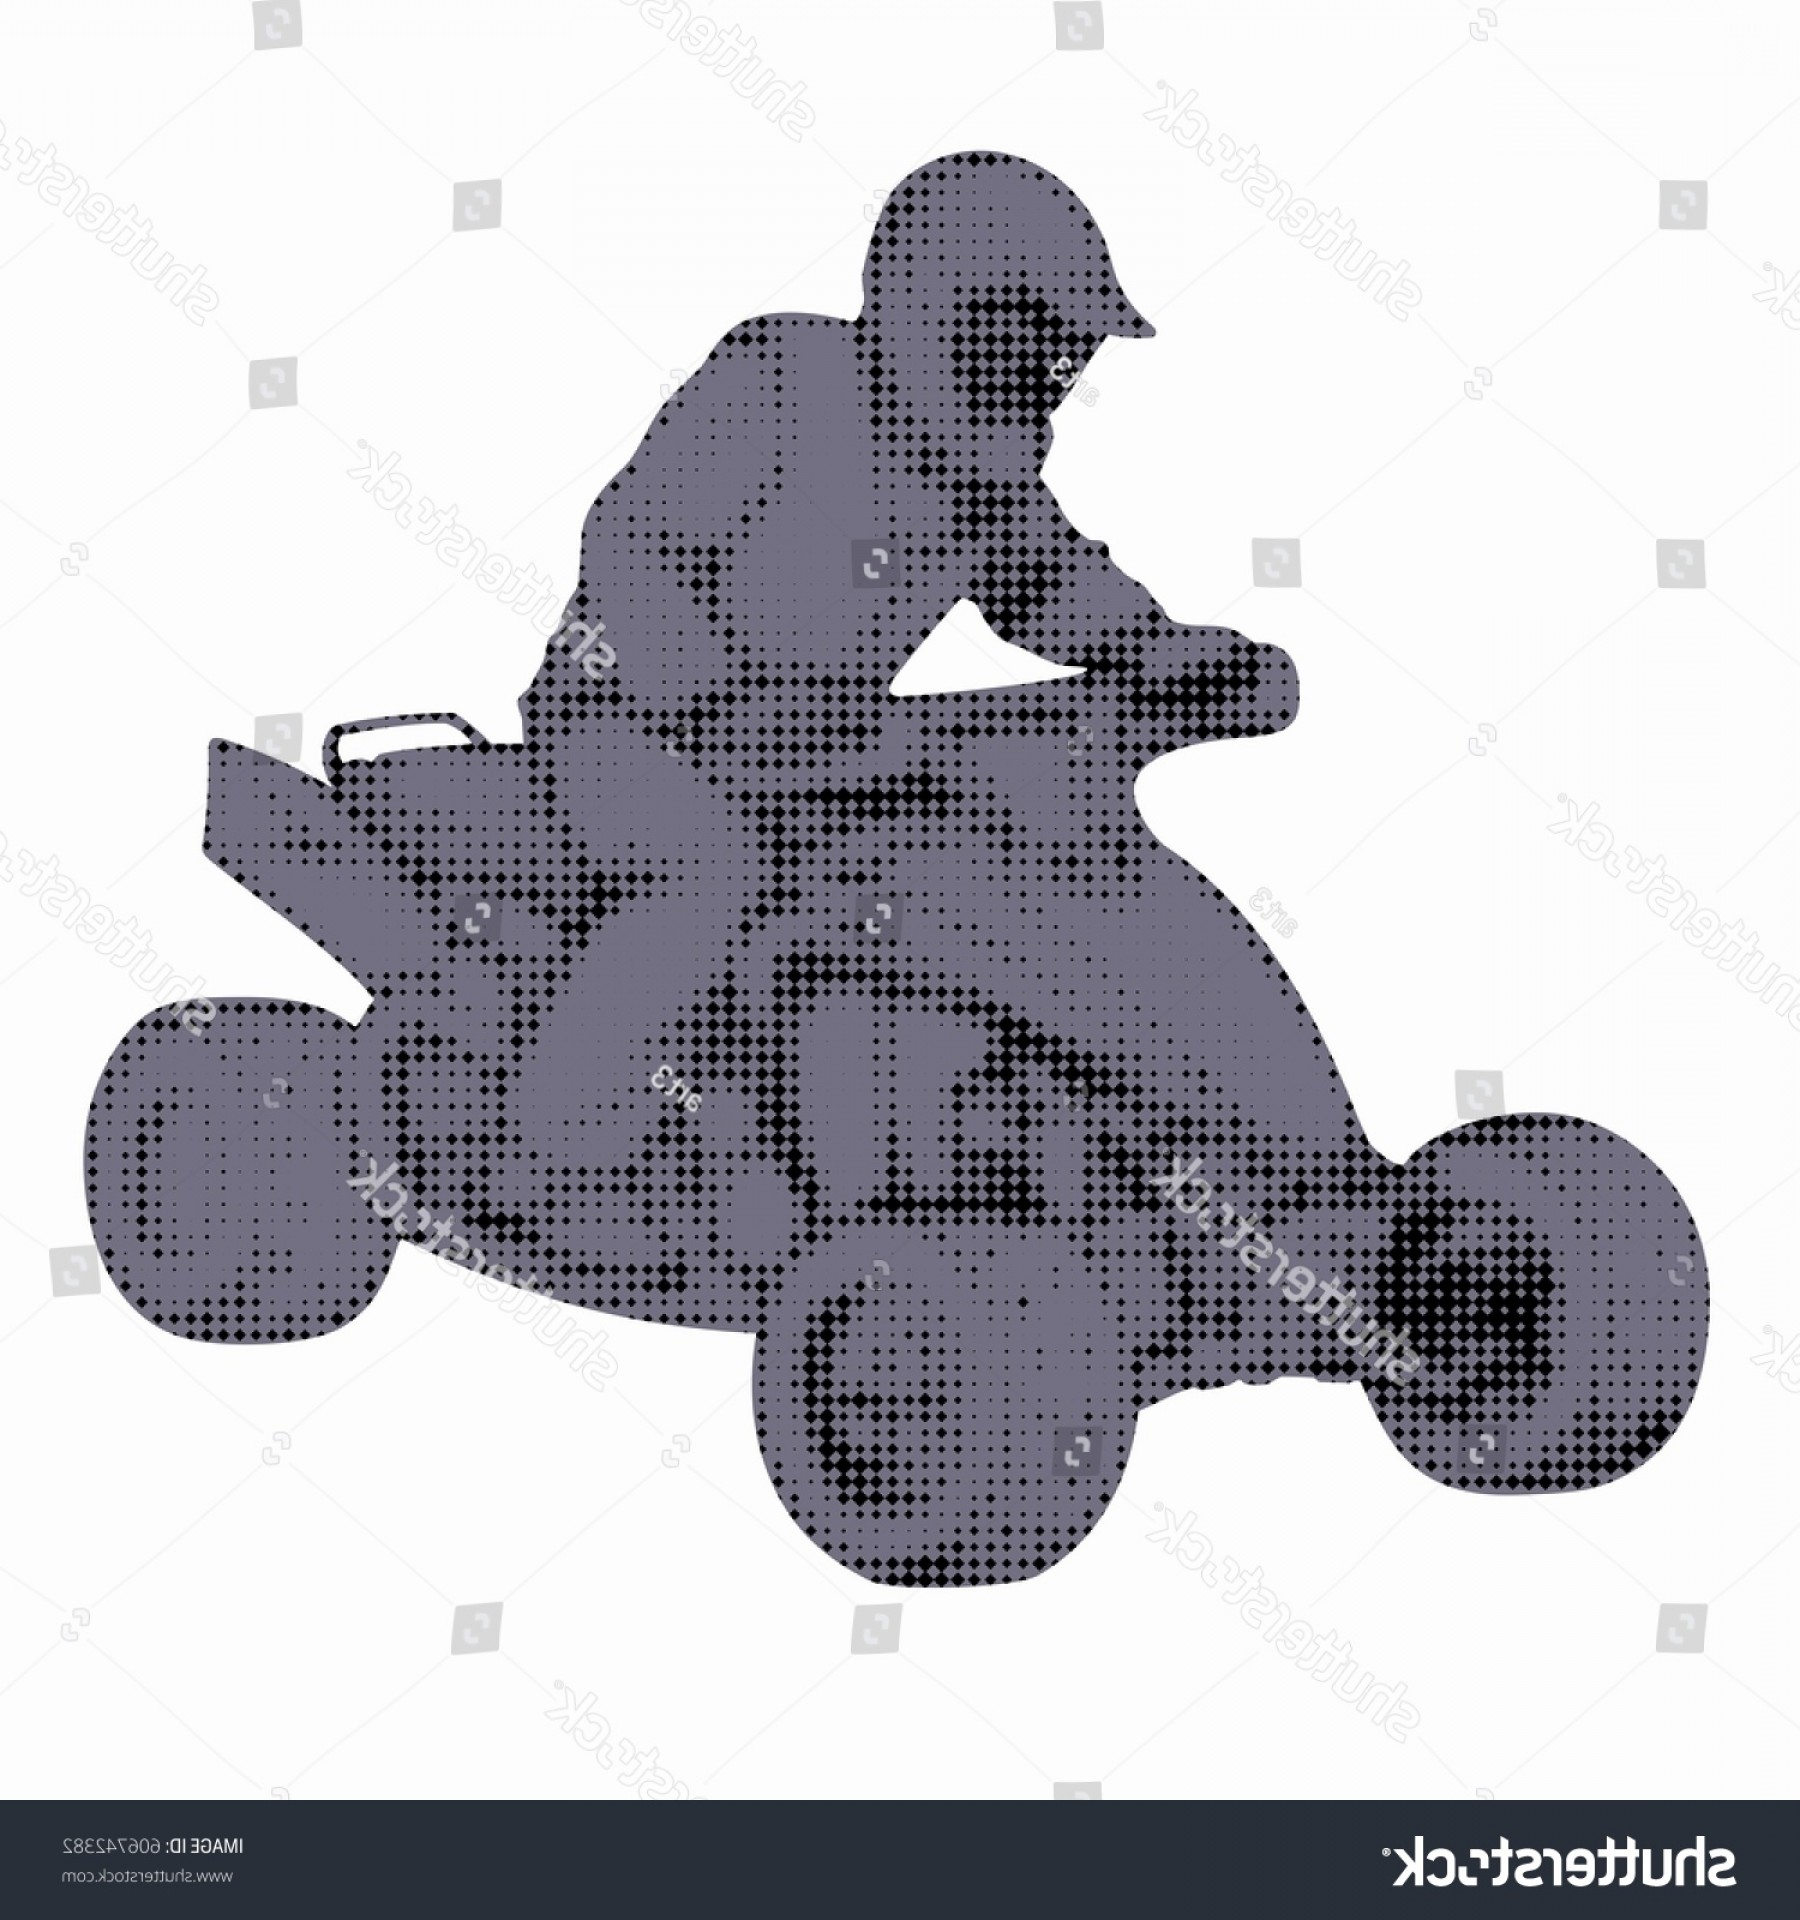 ATV Rider Vector: Silhouette Rider Atv Cartoon Pixel Image